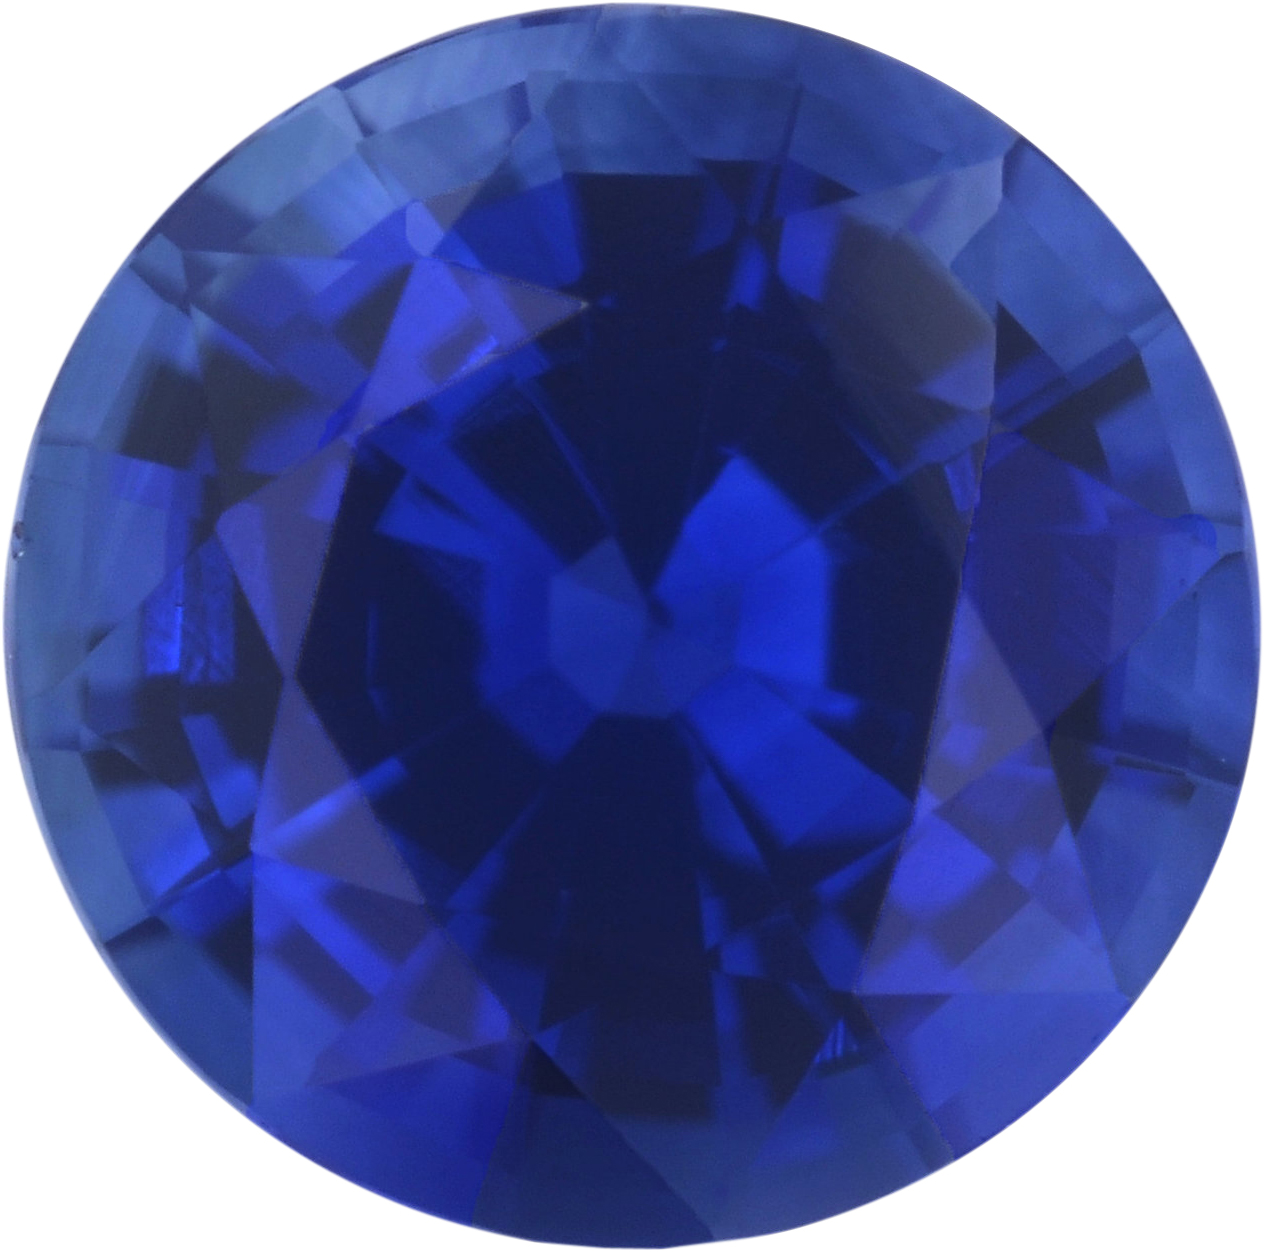 1.03 carats Blue Loose Sapphire Gemstone in Round Cut, 6 mm